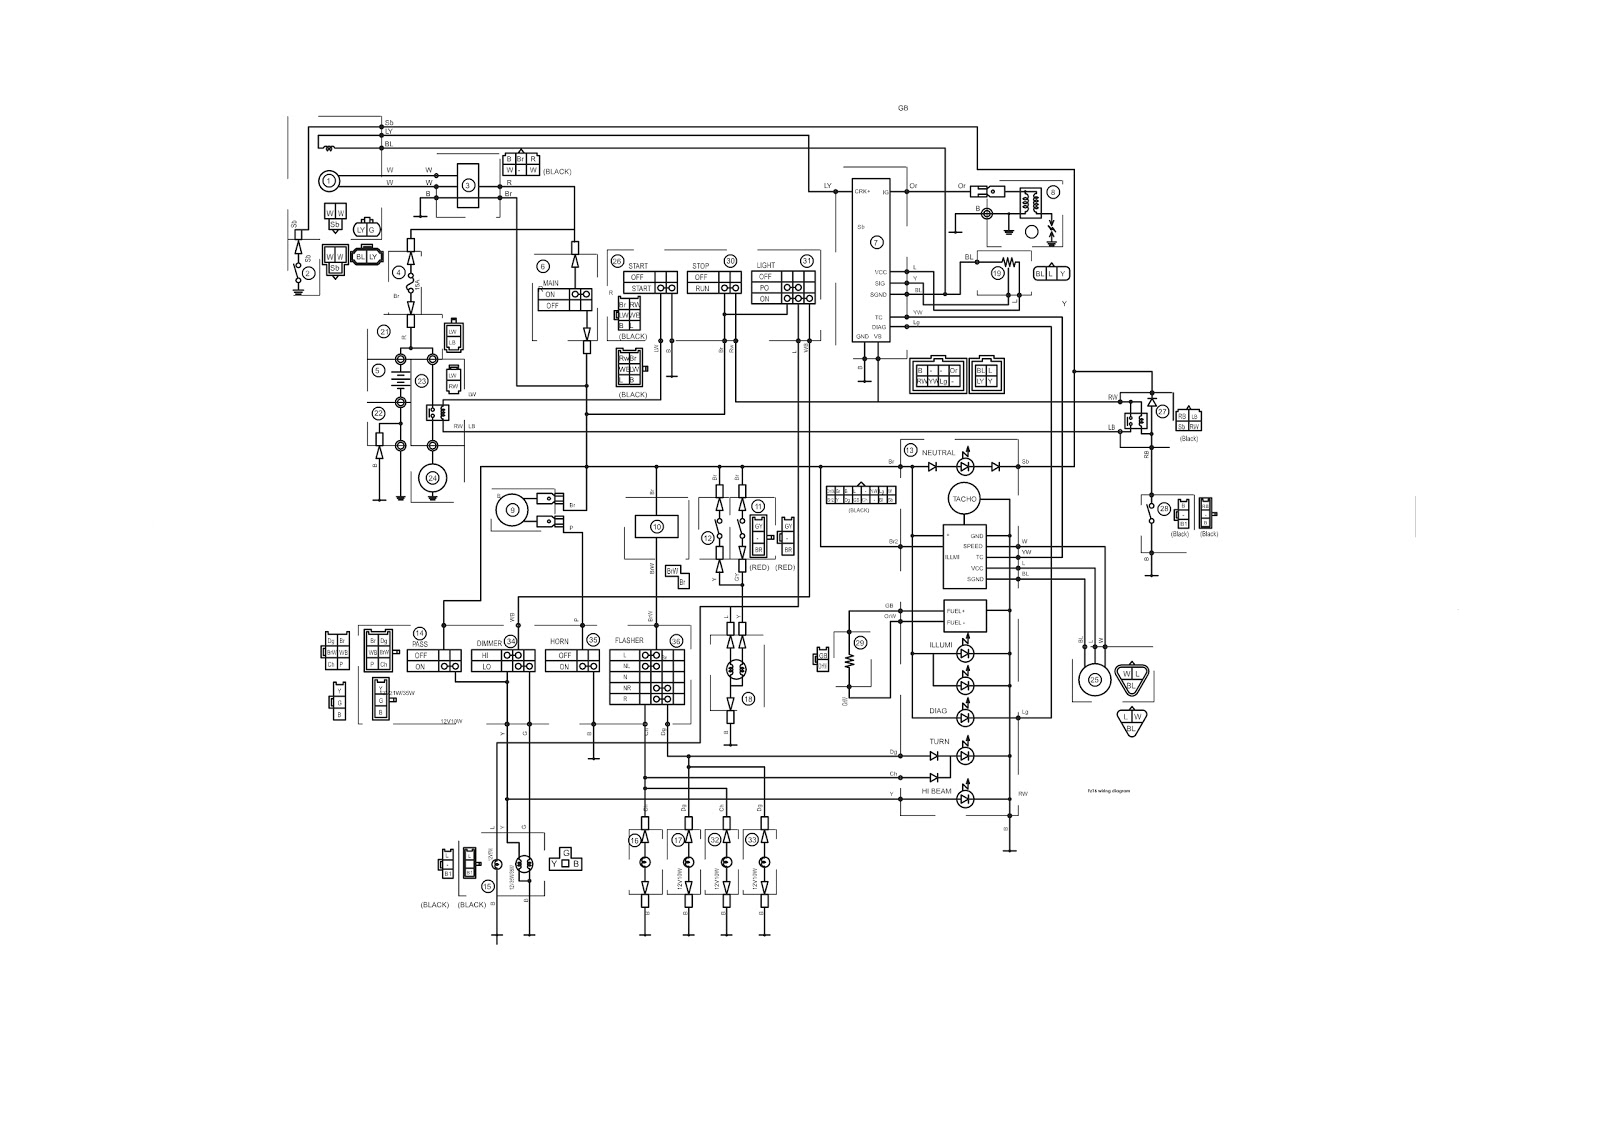 Residential Electrical Wiring Diagrams together with Yamaha 250 Bear Tracker Wiring Diagram furthermore Thank You Icon besides Yamaha Wiring Diagram also Wire Gauge   Chart. on yamaha motorcycle wiring color code